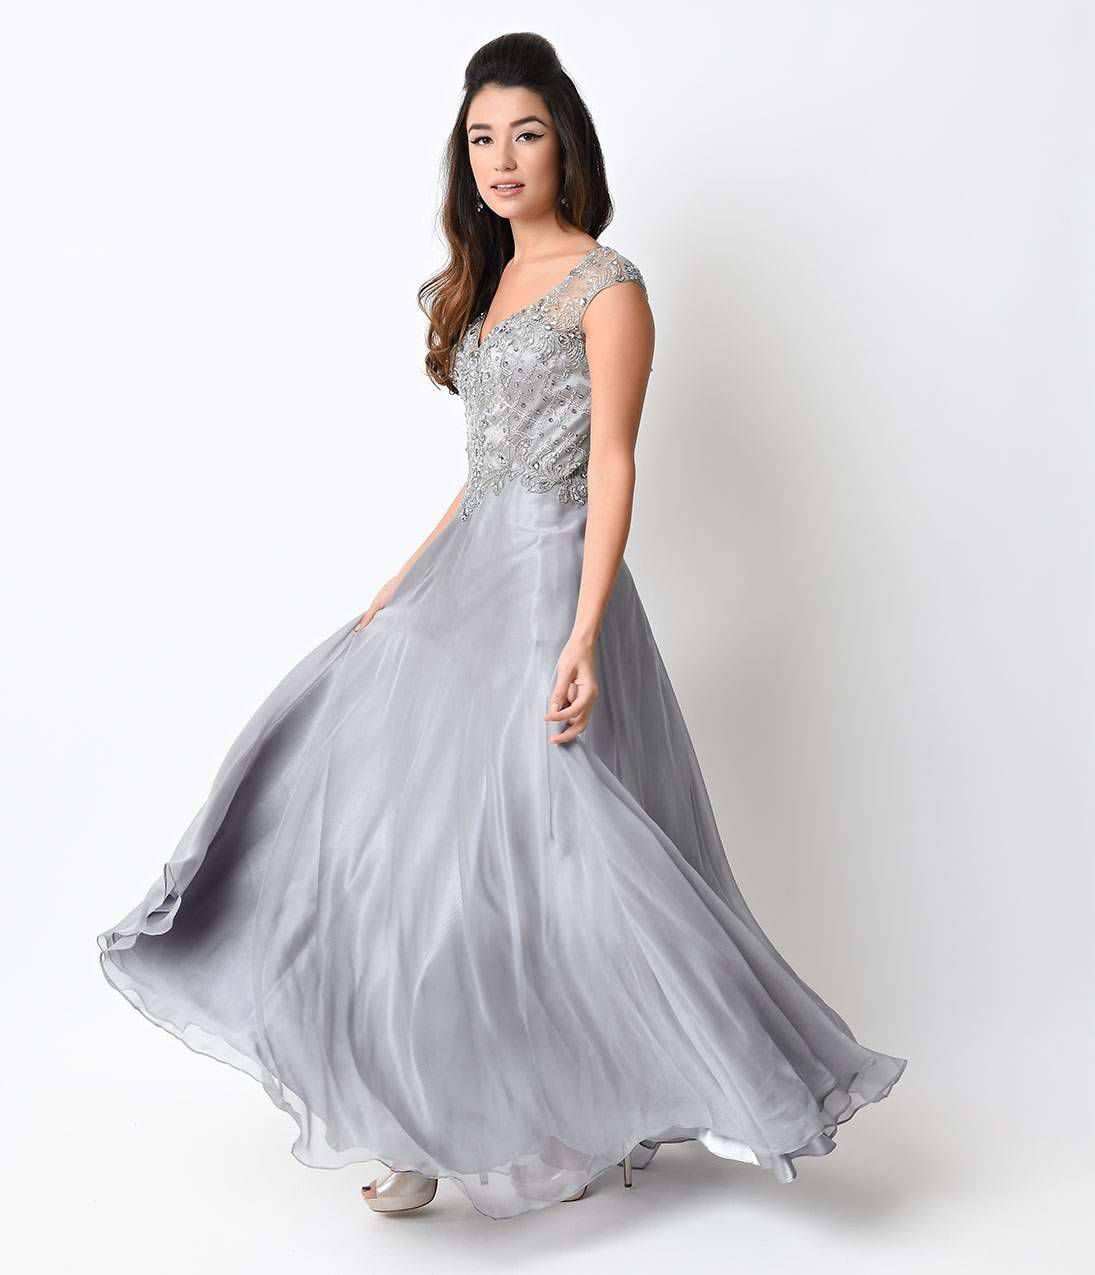 15 Prettiest Vintage-Inspired Prom Dresses | Vintage prom, Prom and ...